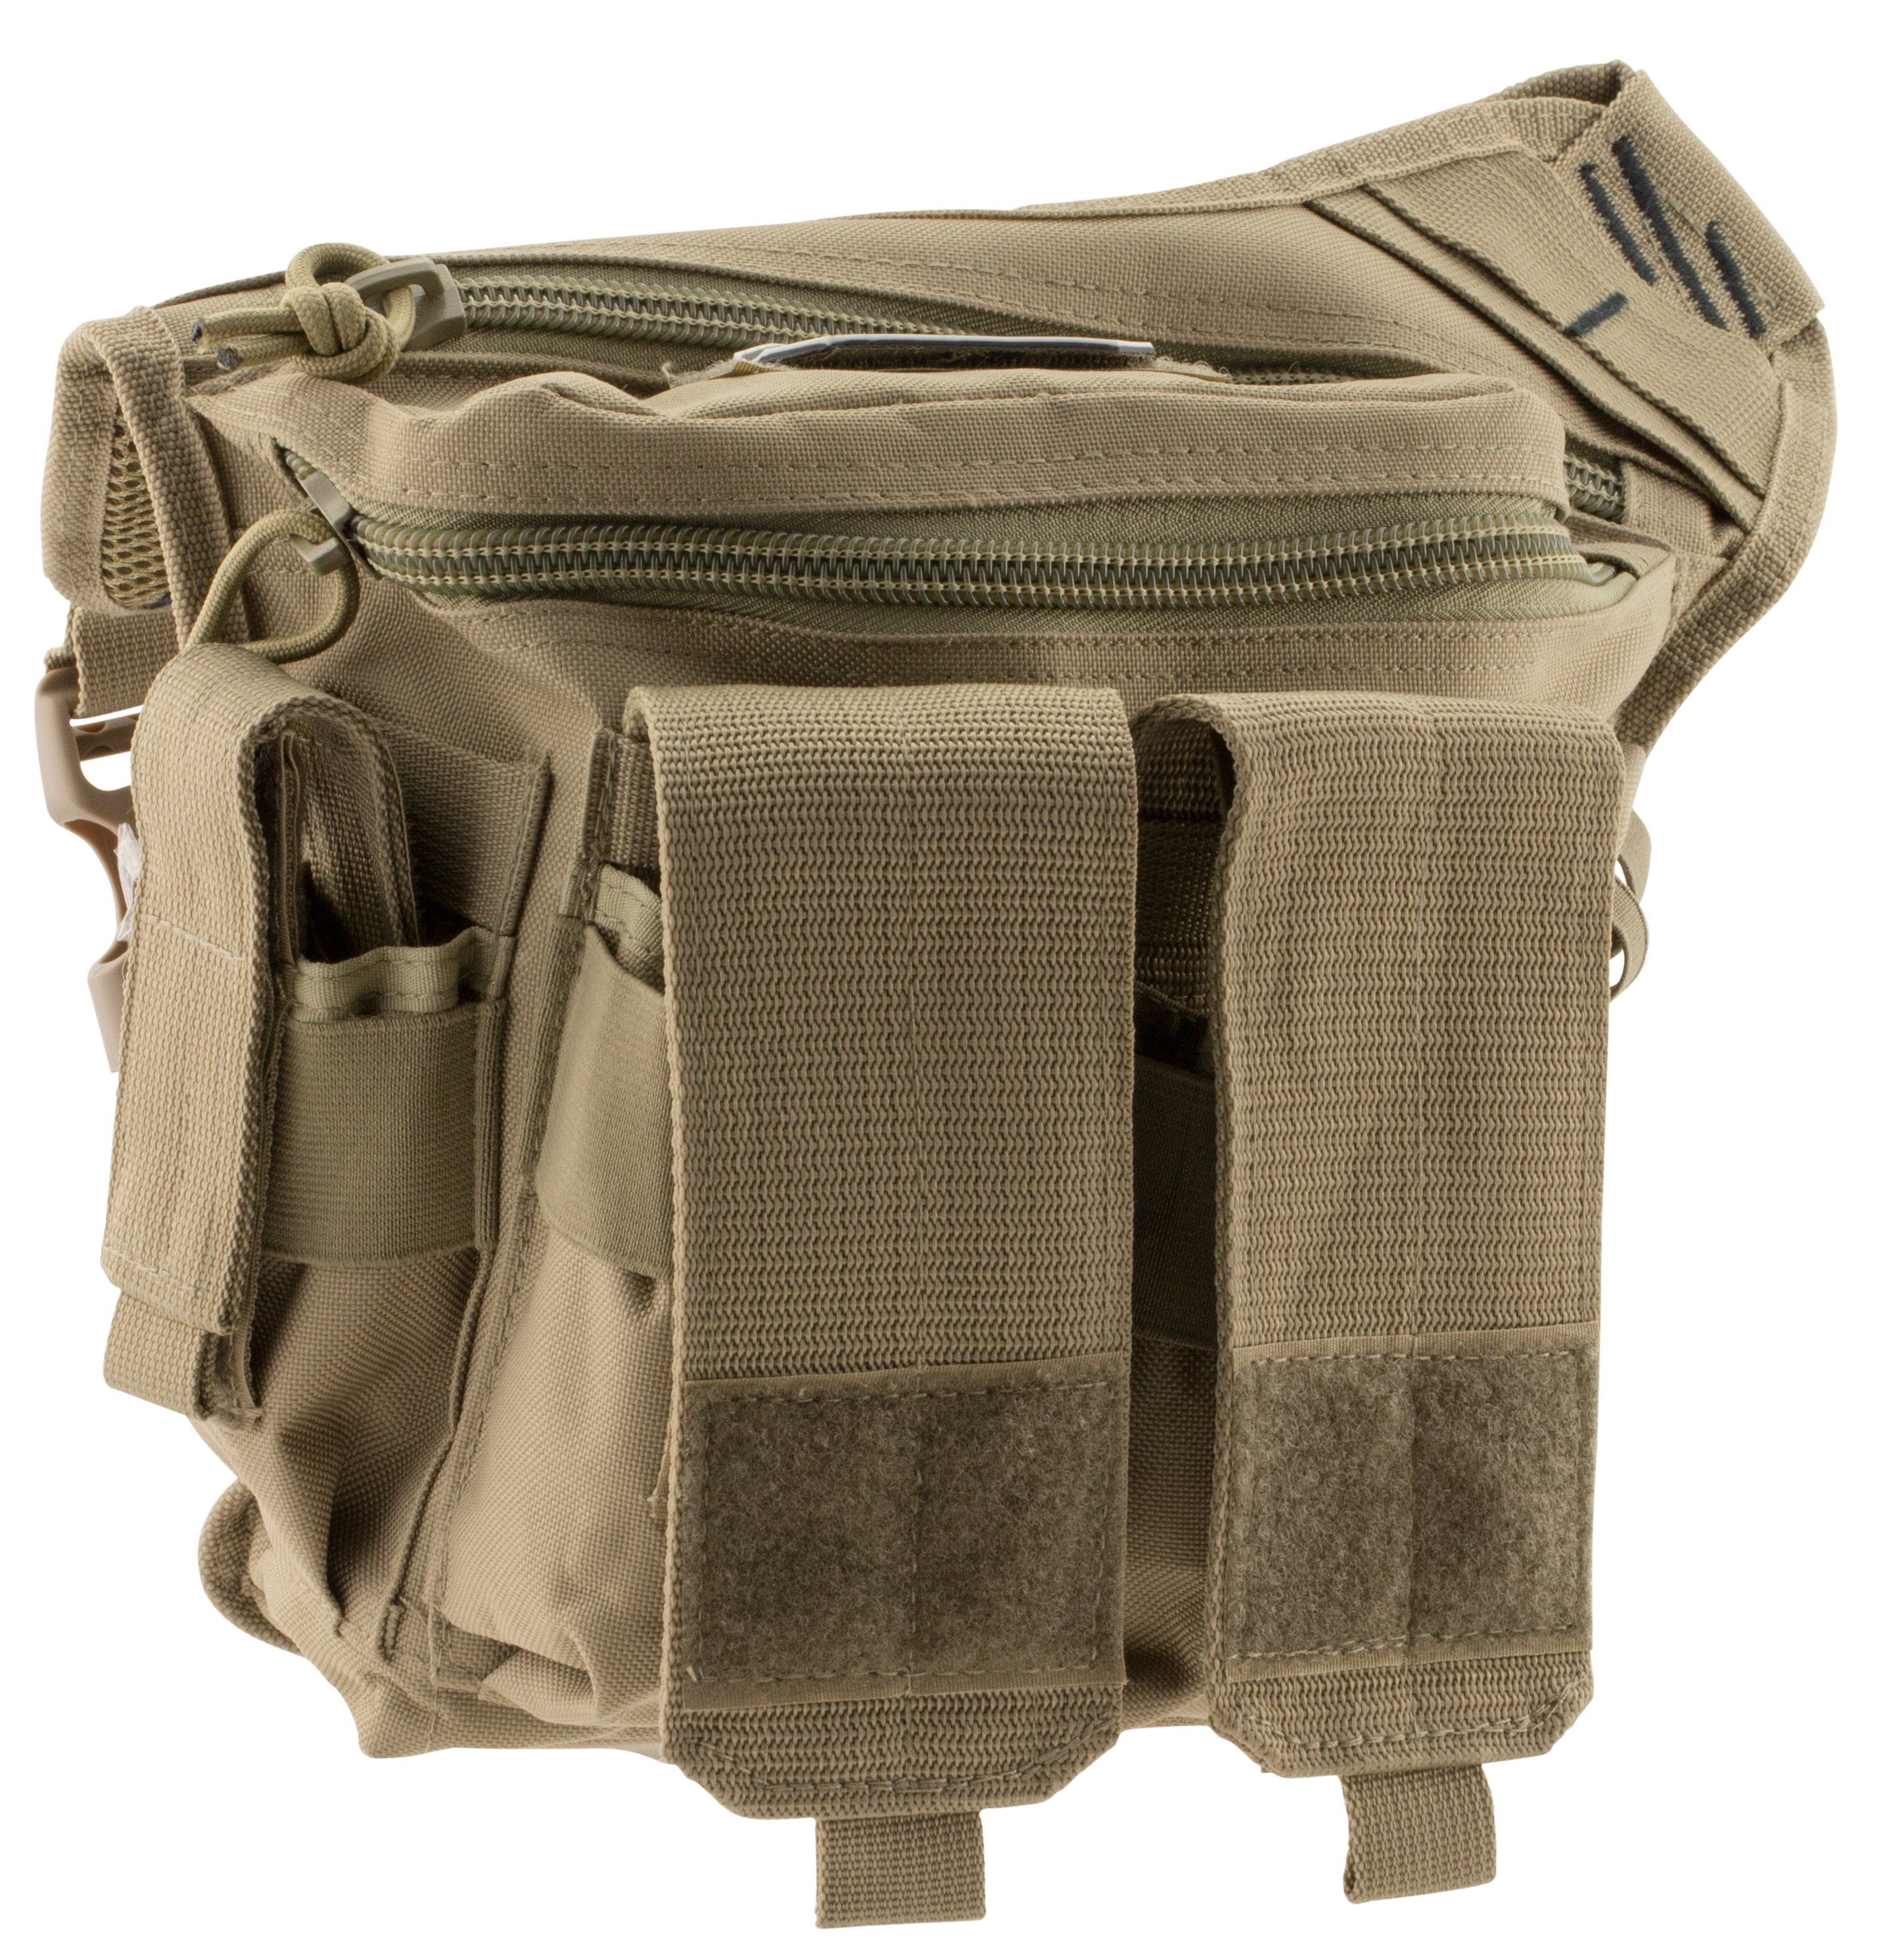 G*Outdoors 981RDP Rapid Deployment Pack Tan Range Bag/Messenger Bag 600D Polyester 10